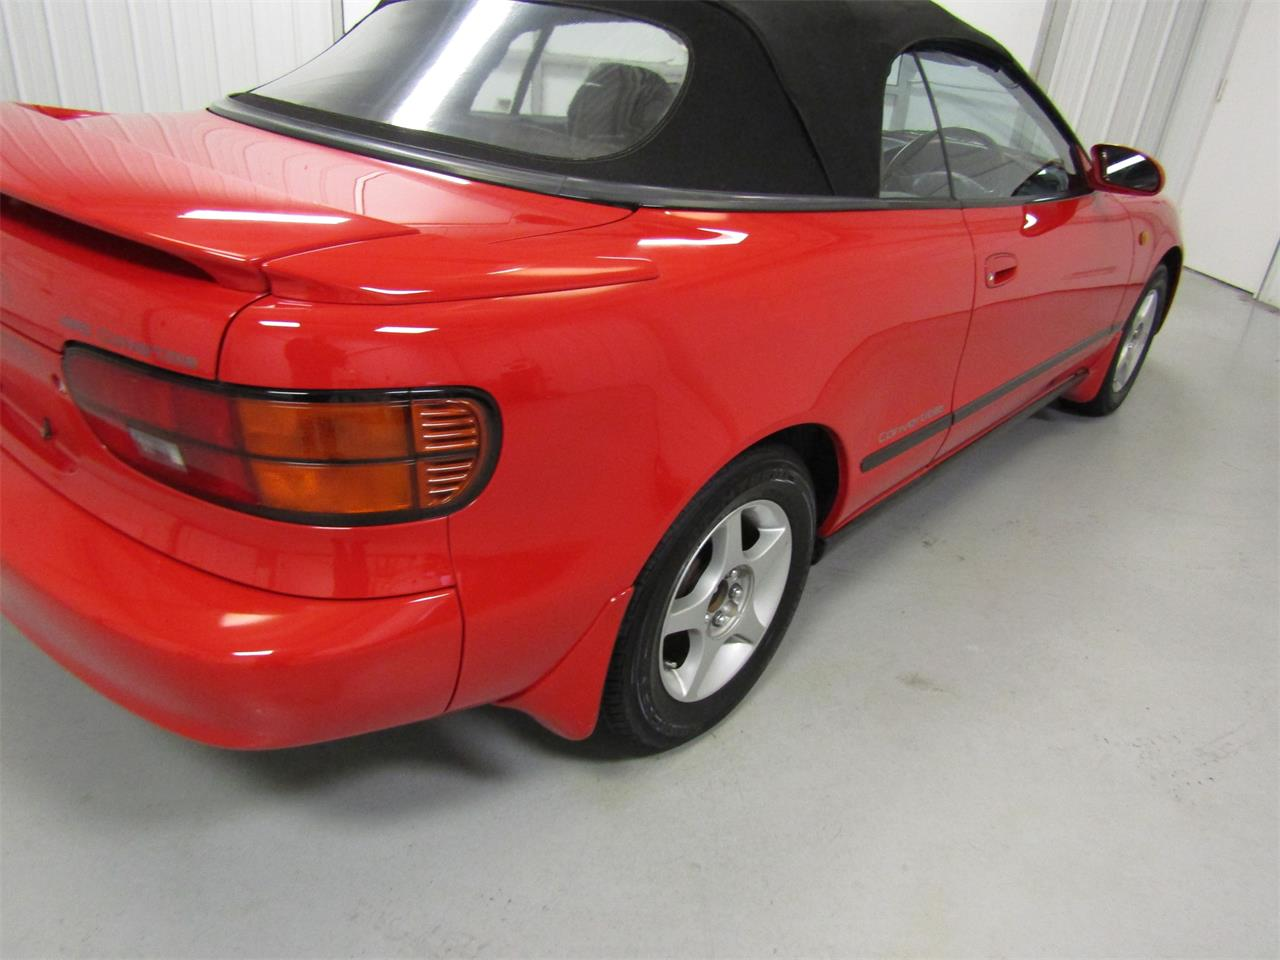 Large Picture of 1991 Toyota Celica - $9,999.00 Offered by Duncan Imports & Classic Cars - OV71